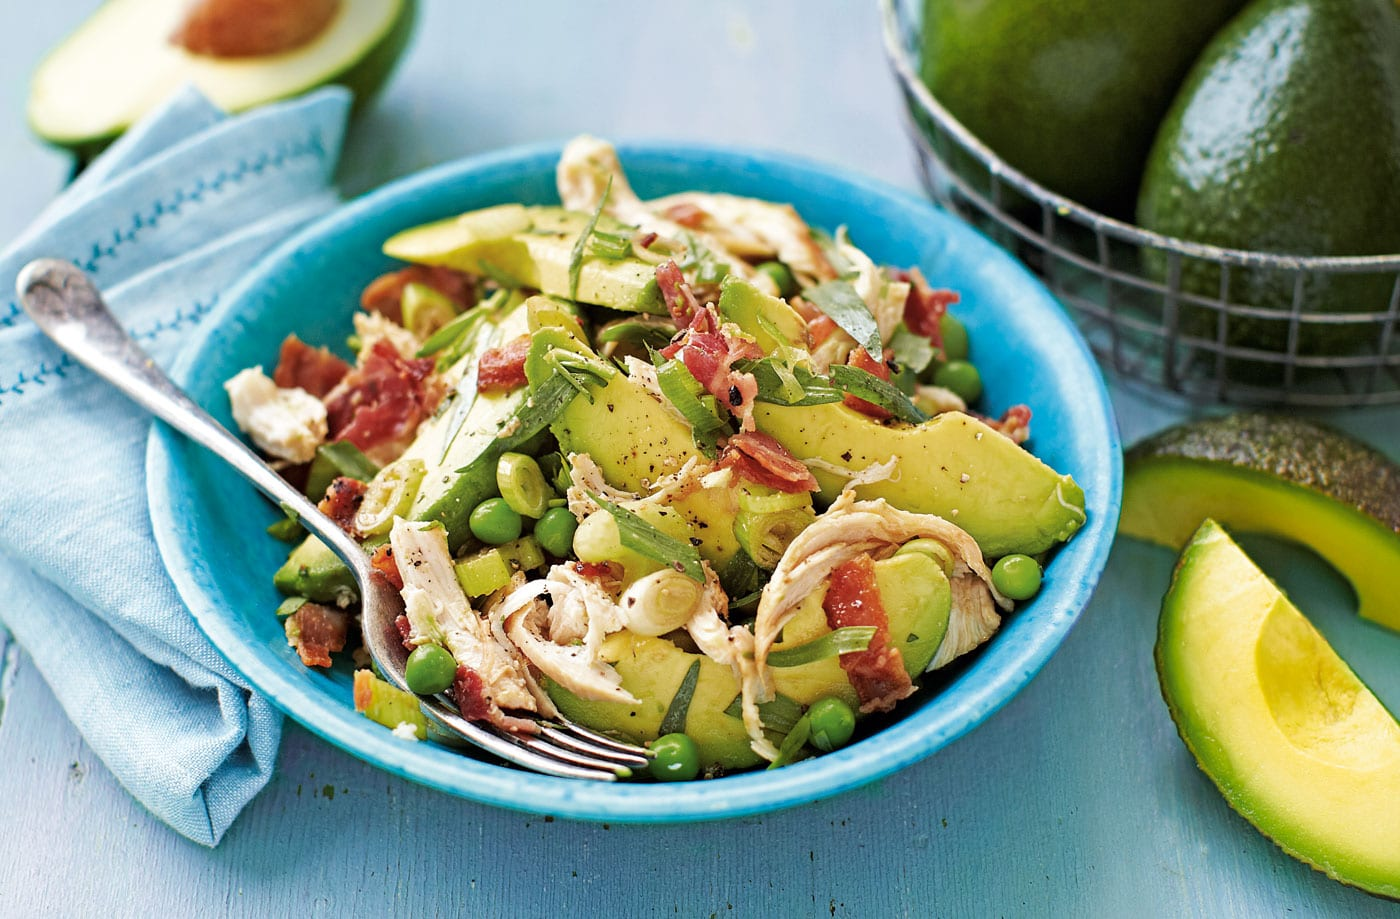 Chicken-and-avocado-salad-LGH-f8469bc0-ca2a-4a36-a18a-d3aaba965bd9-0-1400x919